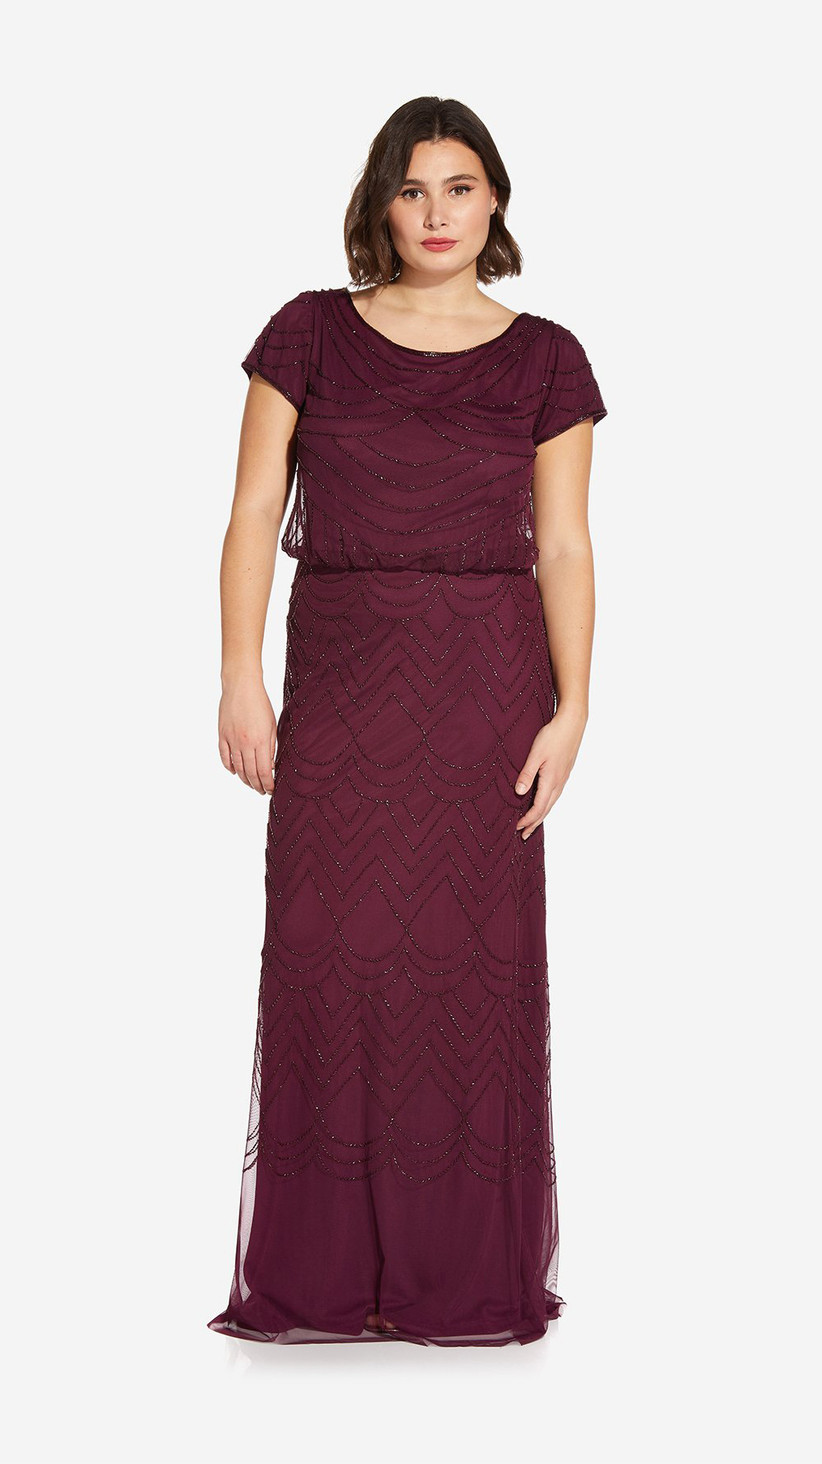 Formal purple floor-length beaded gown for fall wedding